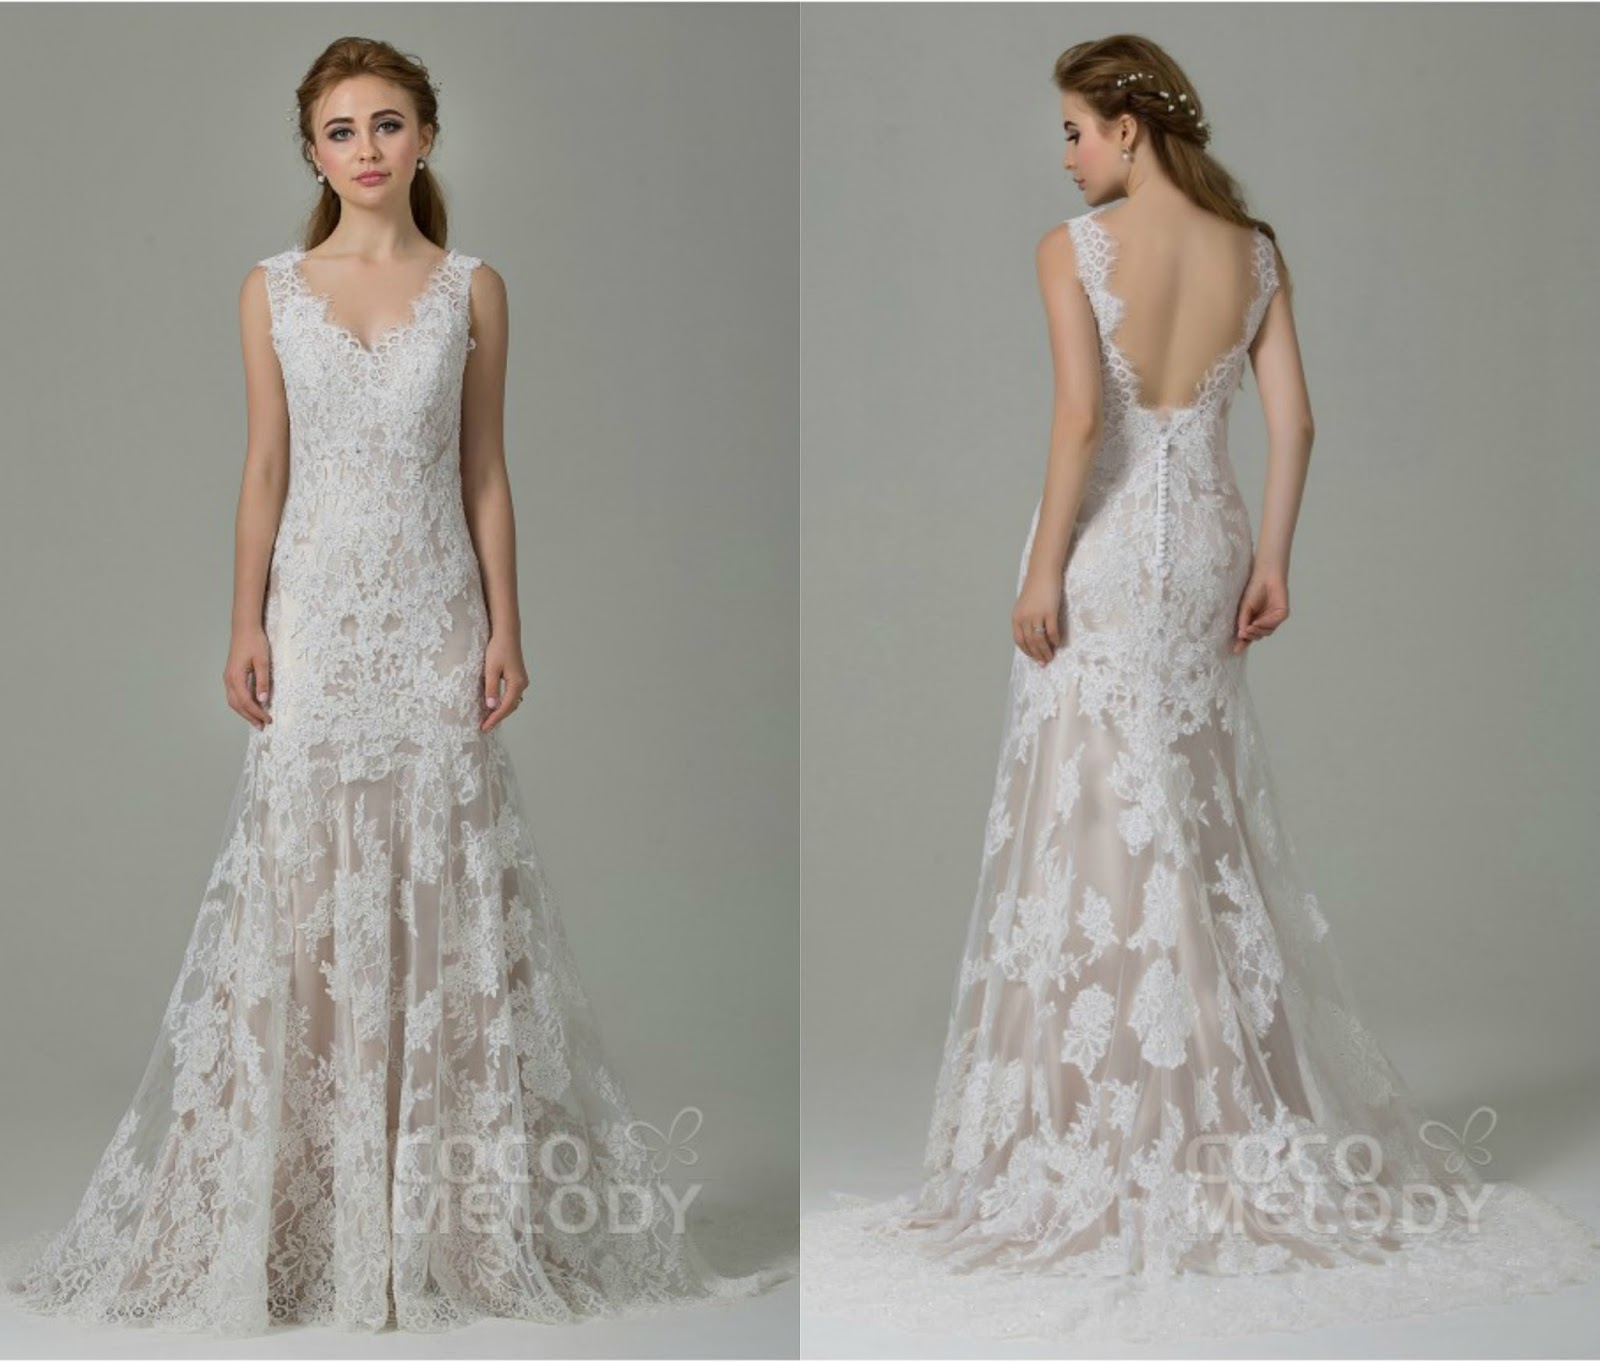 Fabulous Sheath-Column Straps Natural Train Lace Ivory/Champagne Sleeveless Open Back Wedding Dress